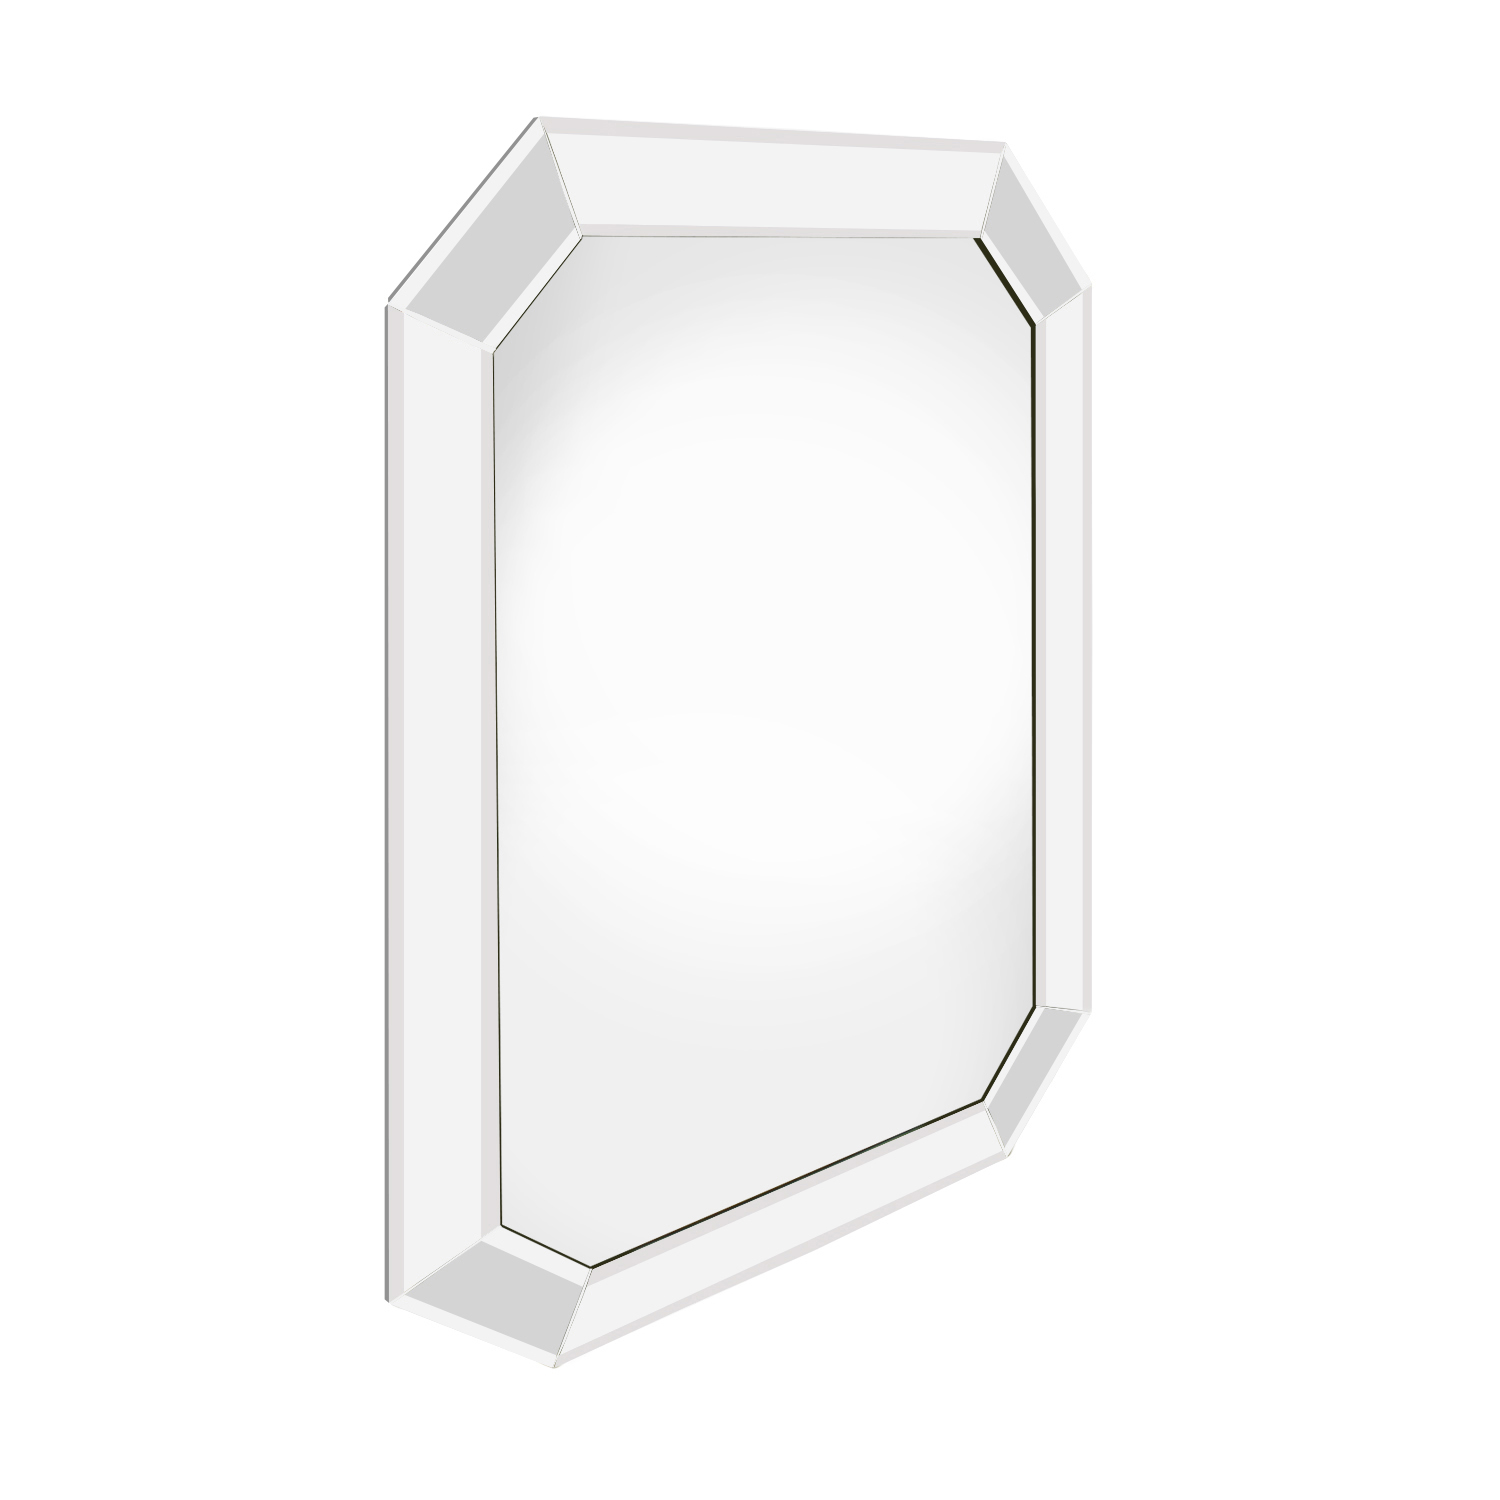 60s 55 large rect cut corners bev mirror233 angl.jpg